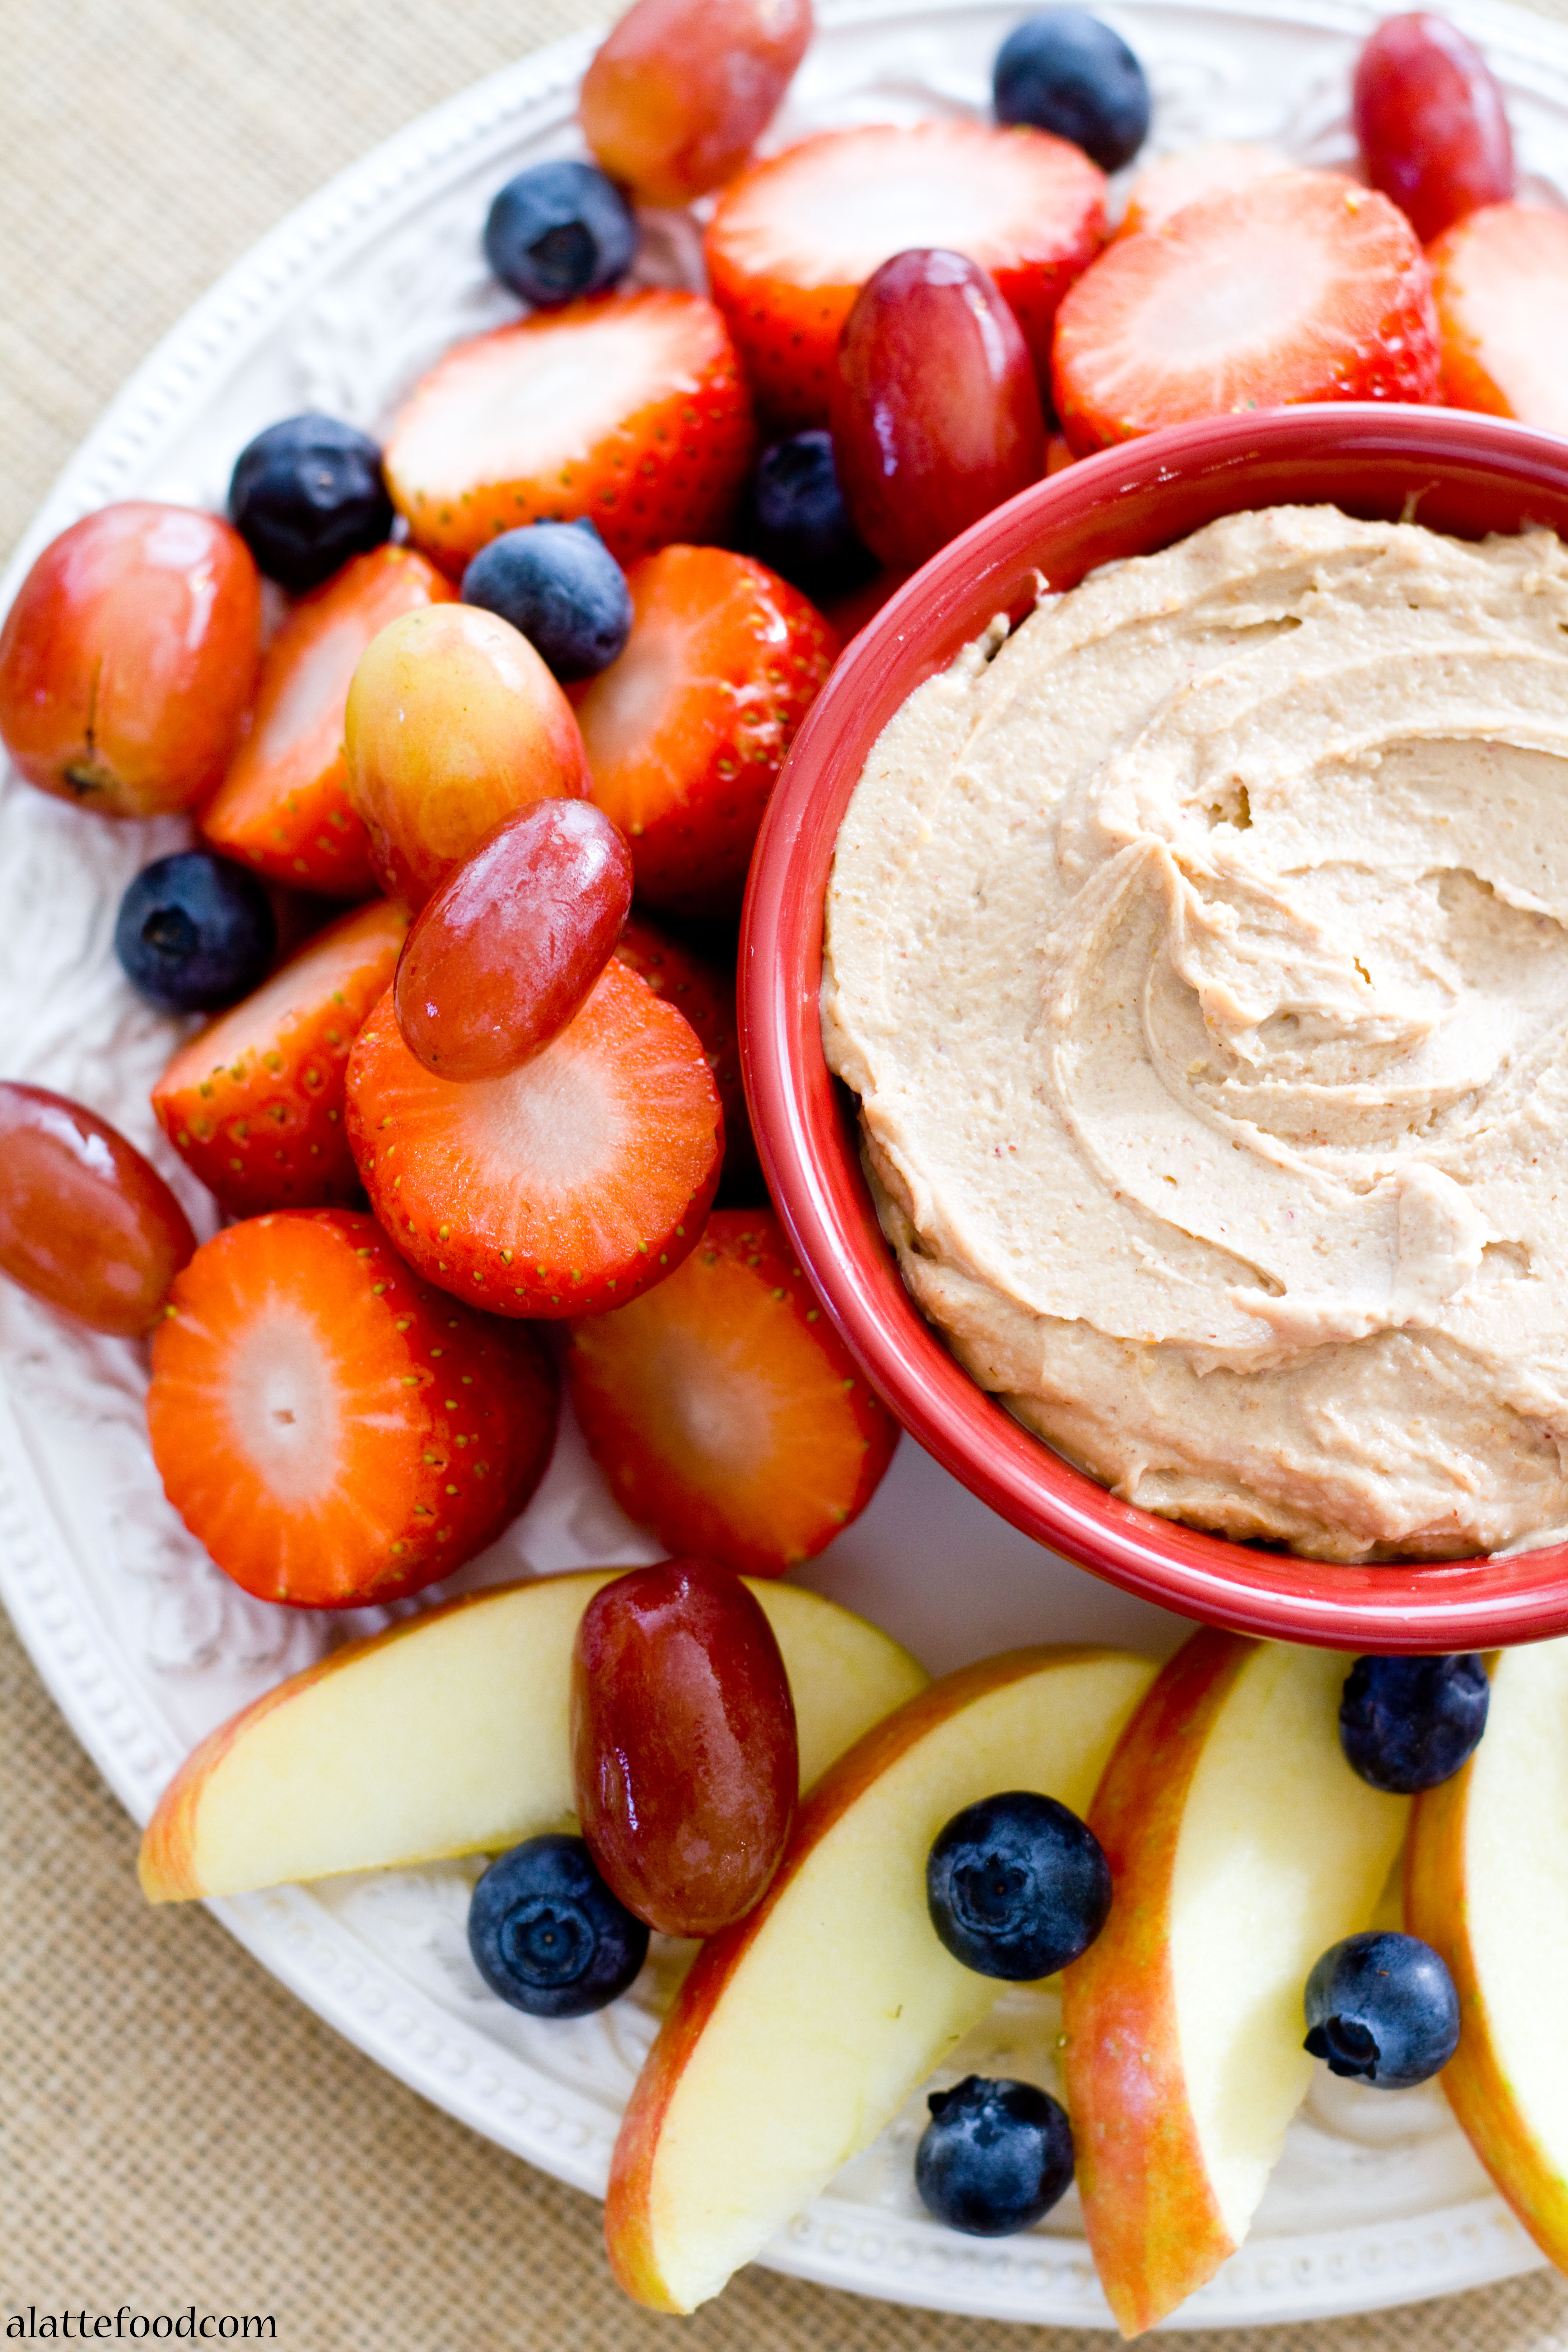 Healthy And Gluten Free Chocolate Peanut Butter Fruit Dip